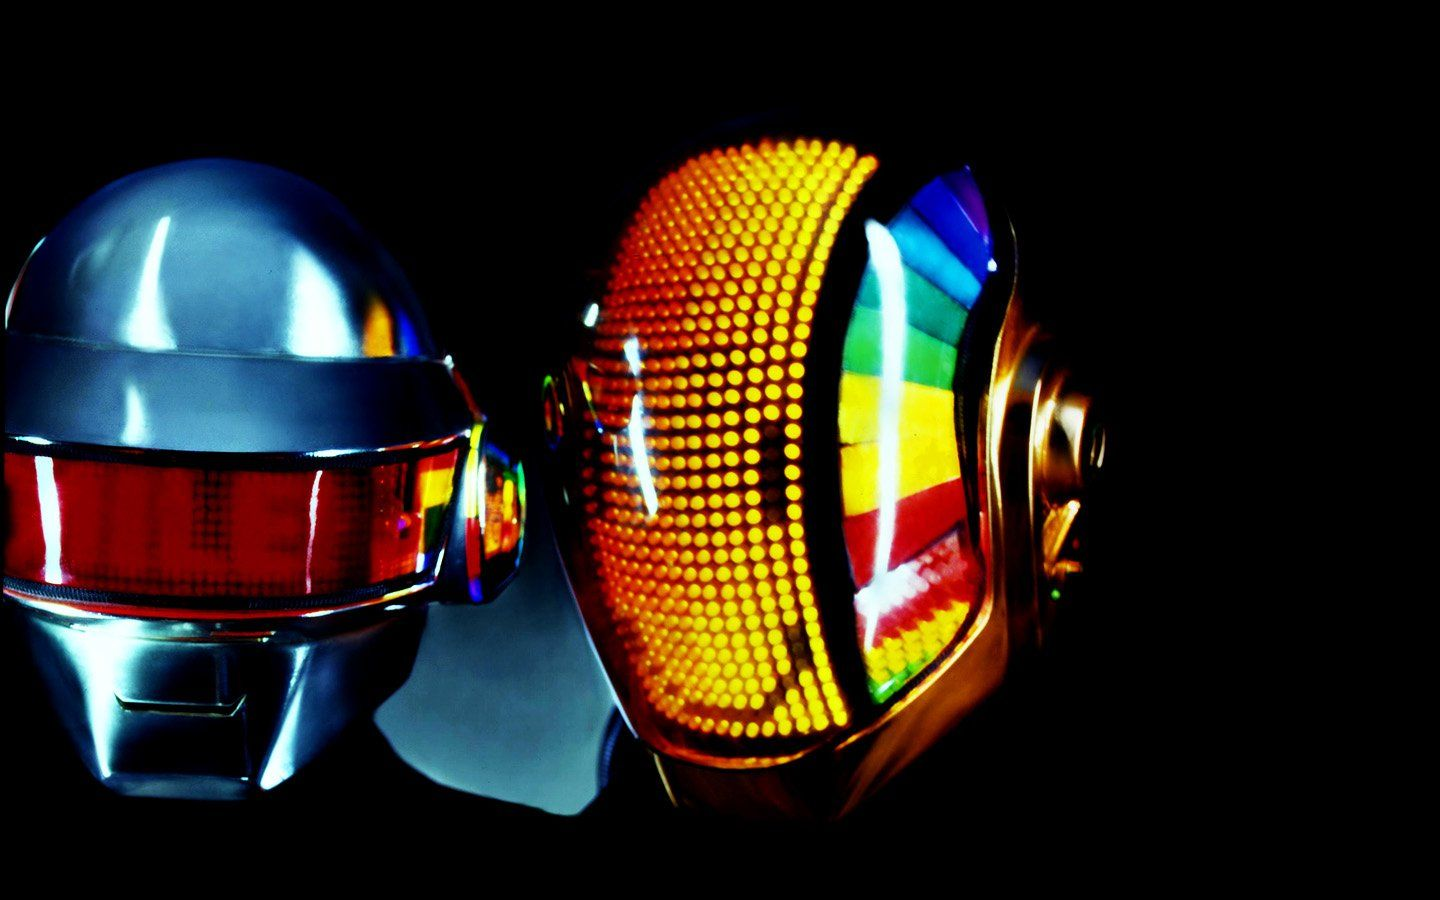 Daft Punk Wallpapers Top Free Daft Punk Backgrounds